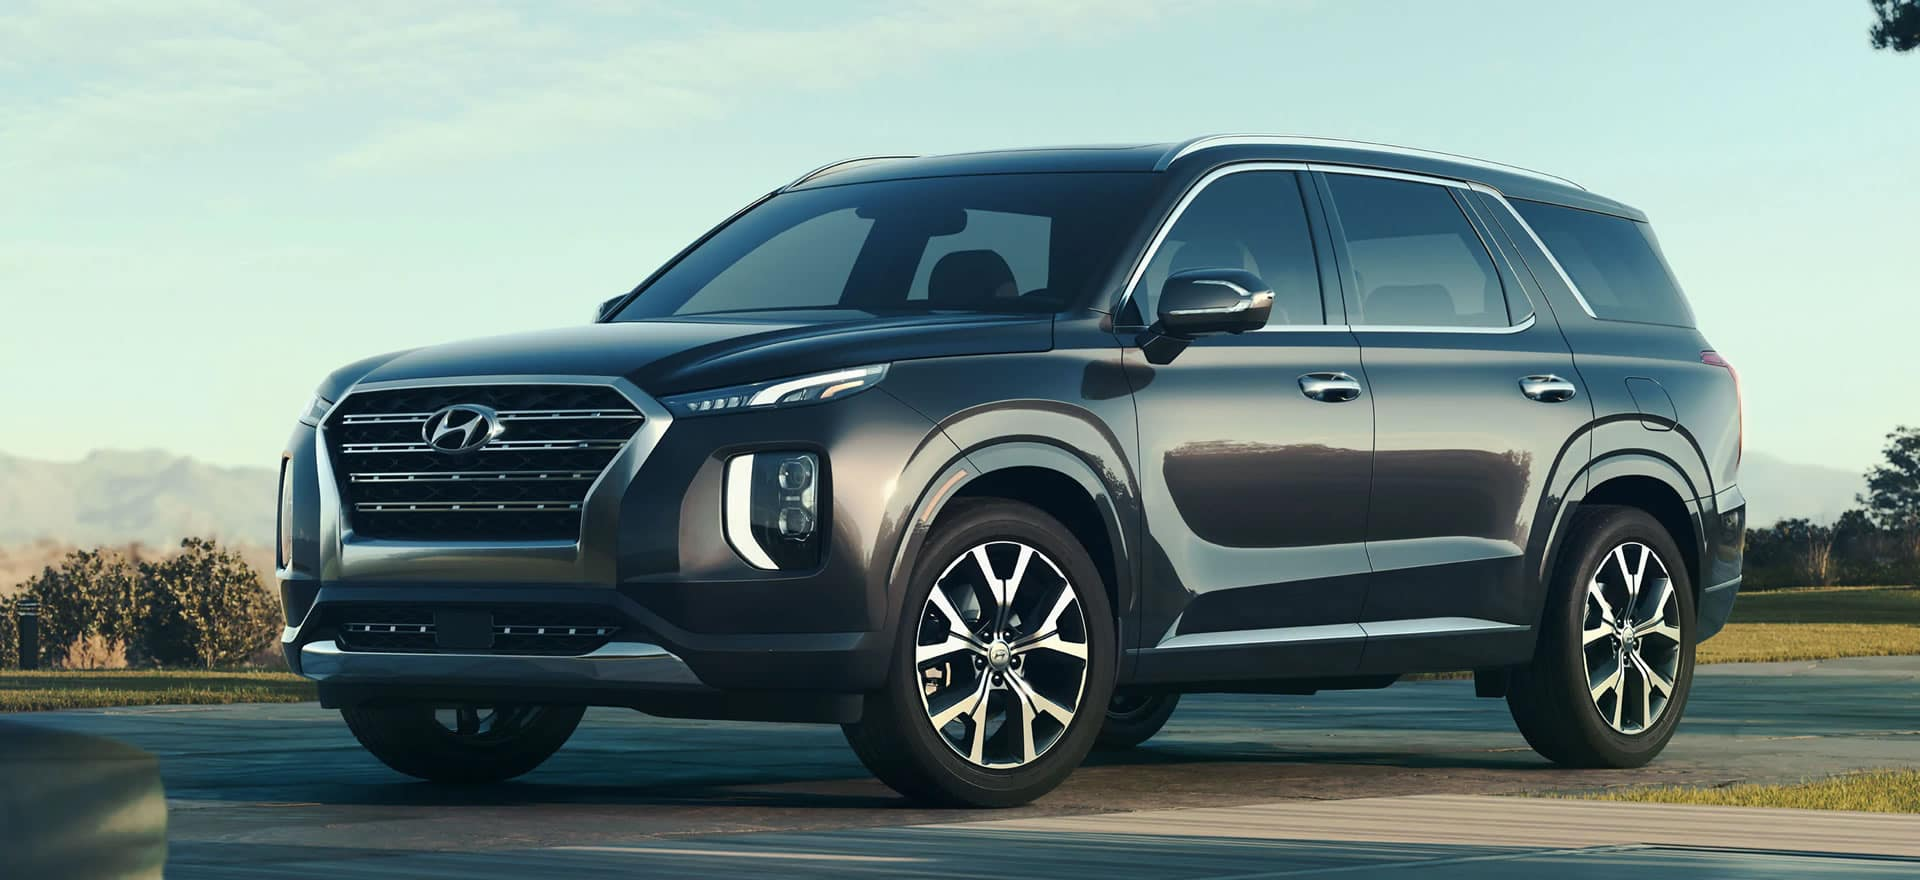 Hyundai Palisade 2019 View Specs Prices Photos More Driving